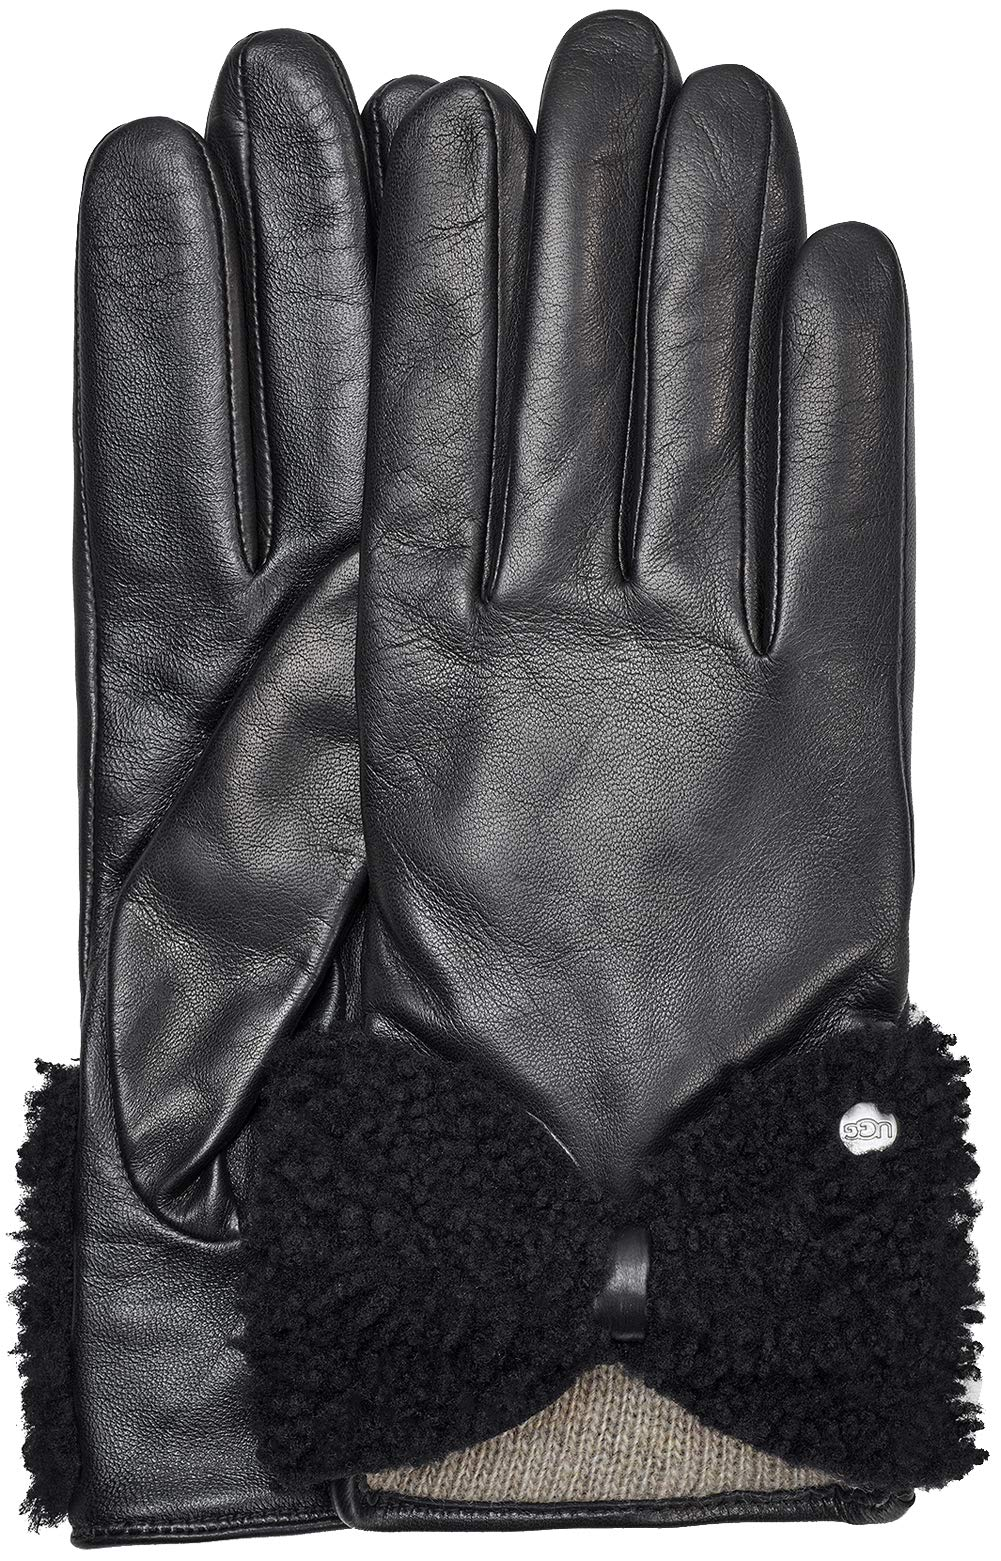 UGG Women's Tech Leather Gloves with Sheepskin Bow Black LG by UGG